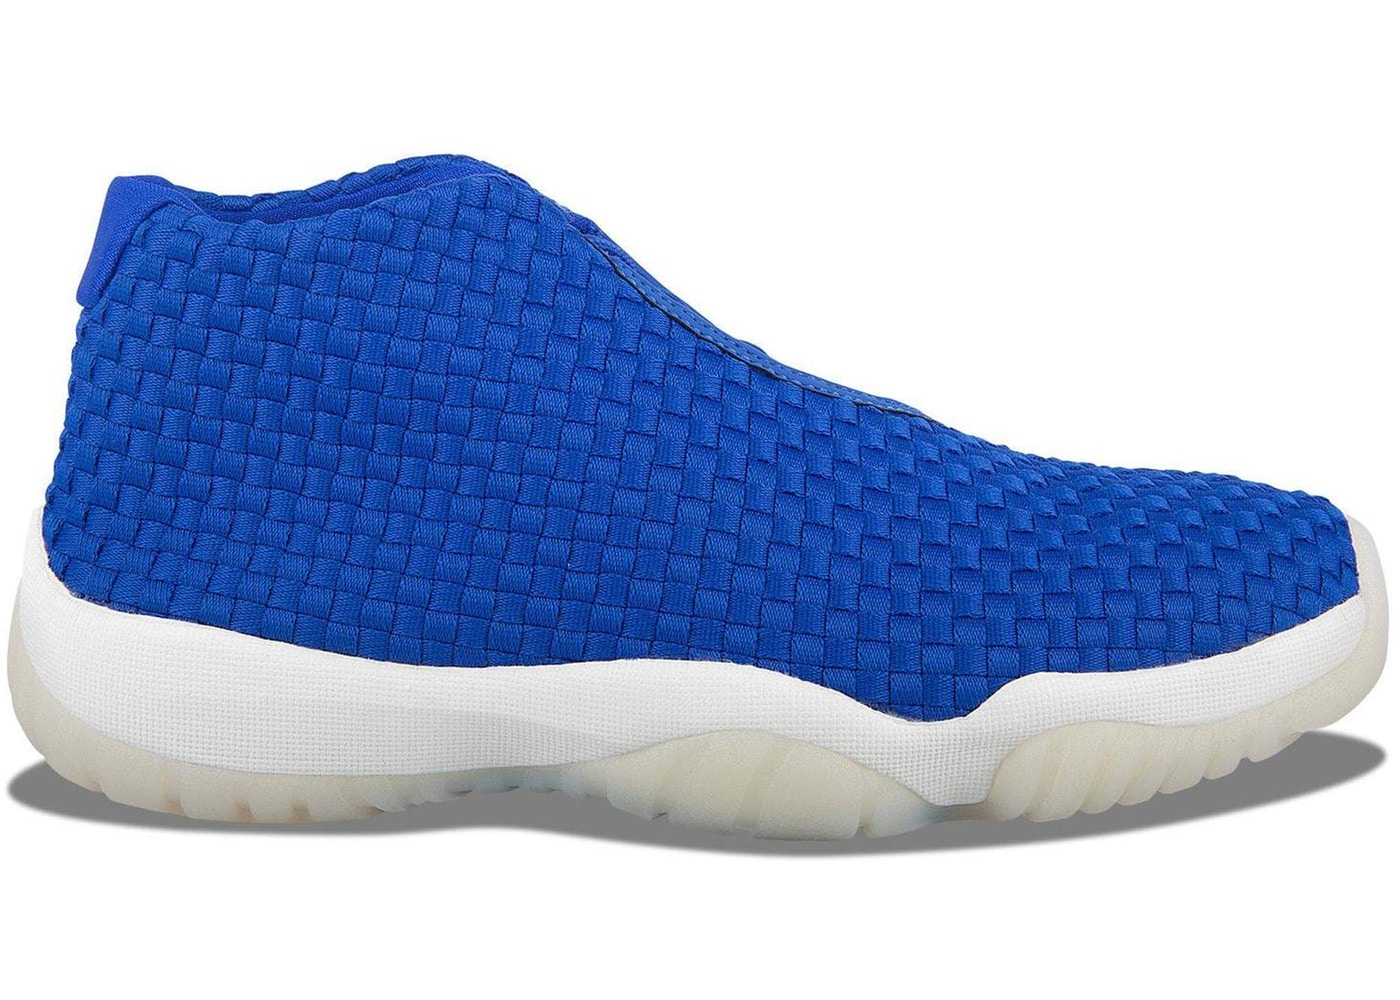 6afb0309a0f Buy Air Jordan Other Shoes   Deadstock Sneakers